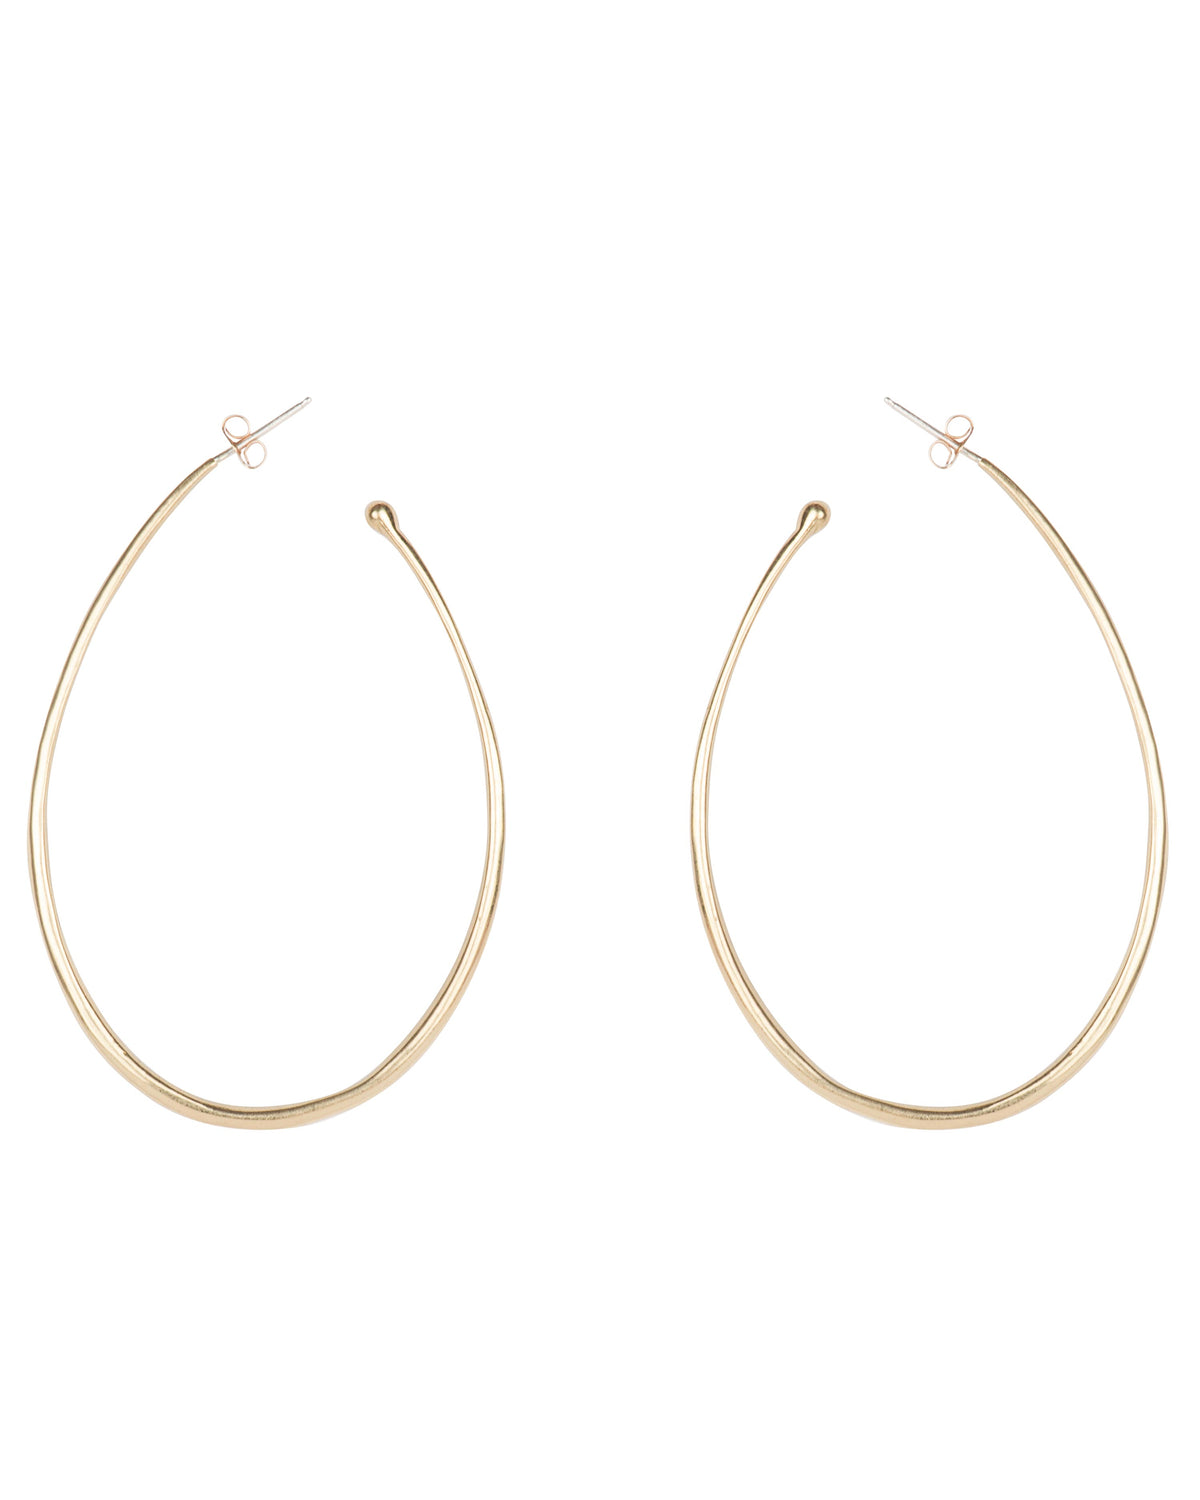 THIN ROUNDED HOOPS III